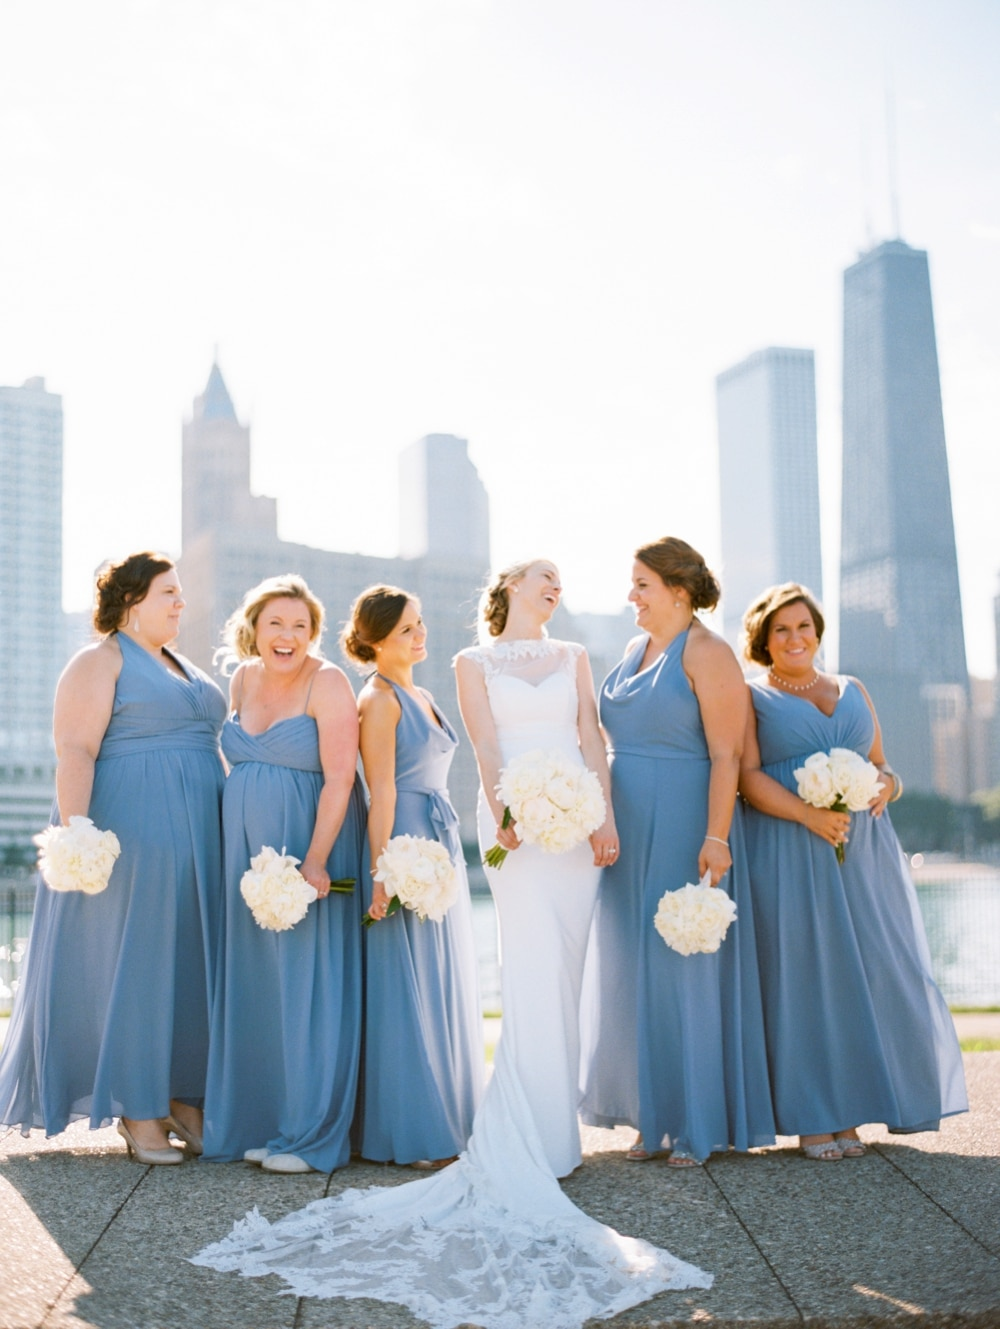 kristin-la-voie-photography-Chicago-Peninsula-Wedding-photographer-65